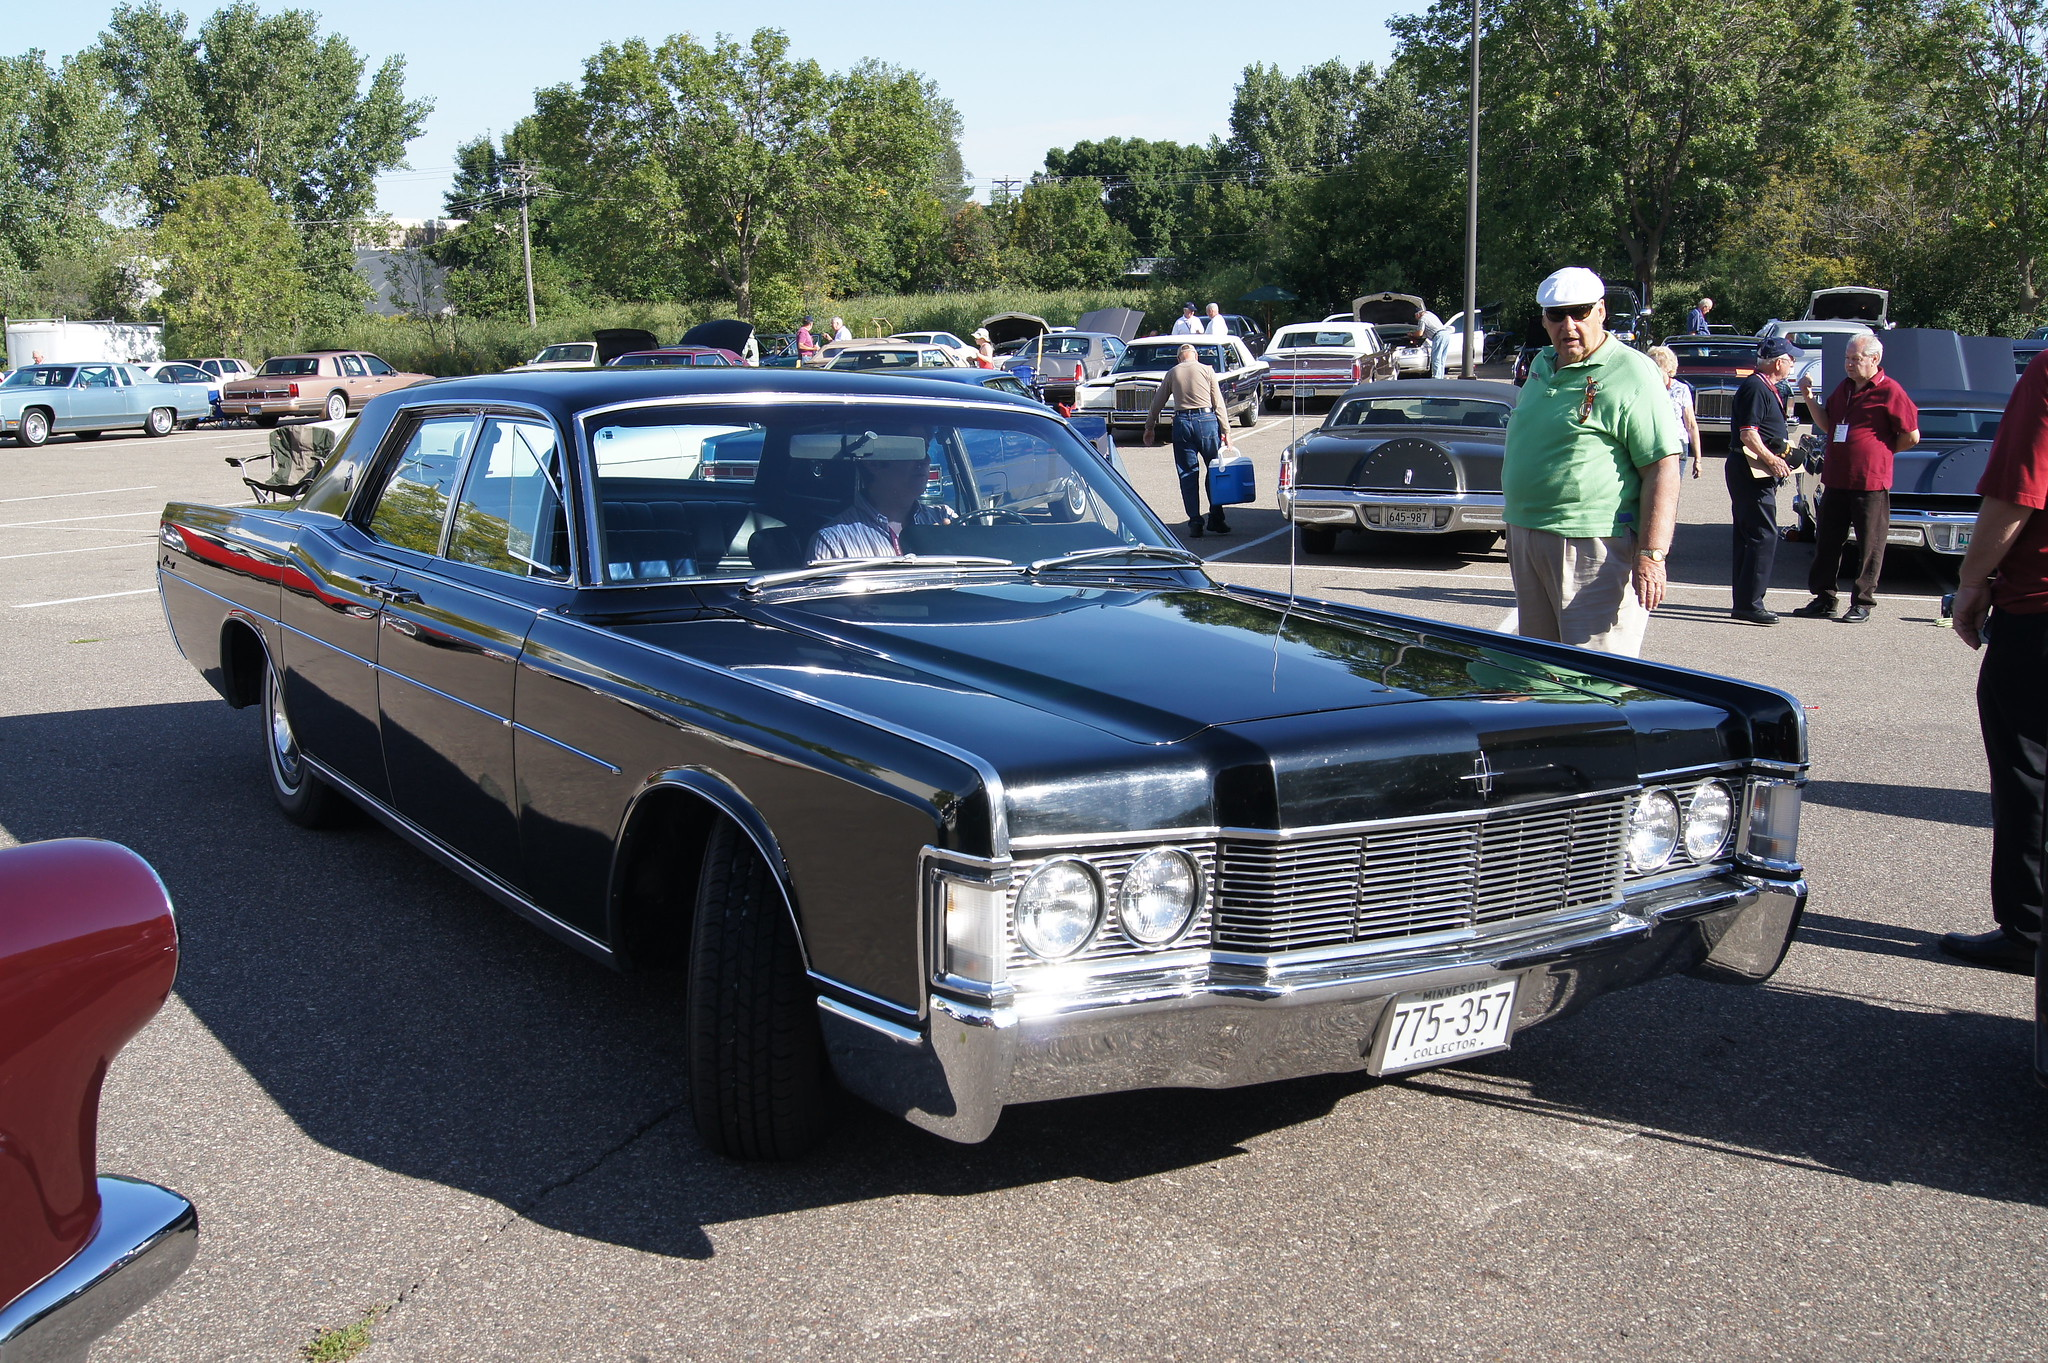 68 lincoln continental lincoln continental owners club flickr photo sharing. Black Bedroom Furniture Sets. Home Design Ideas